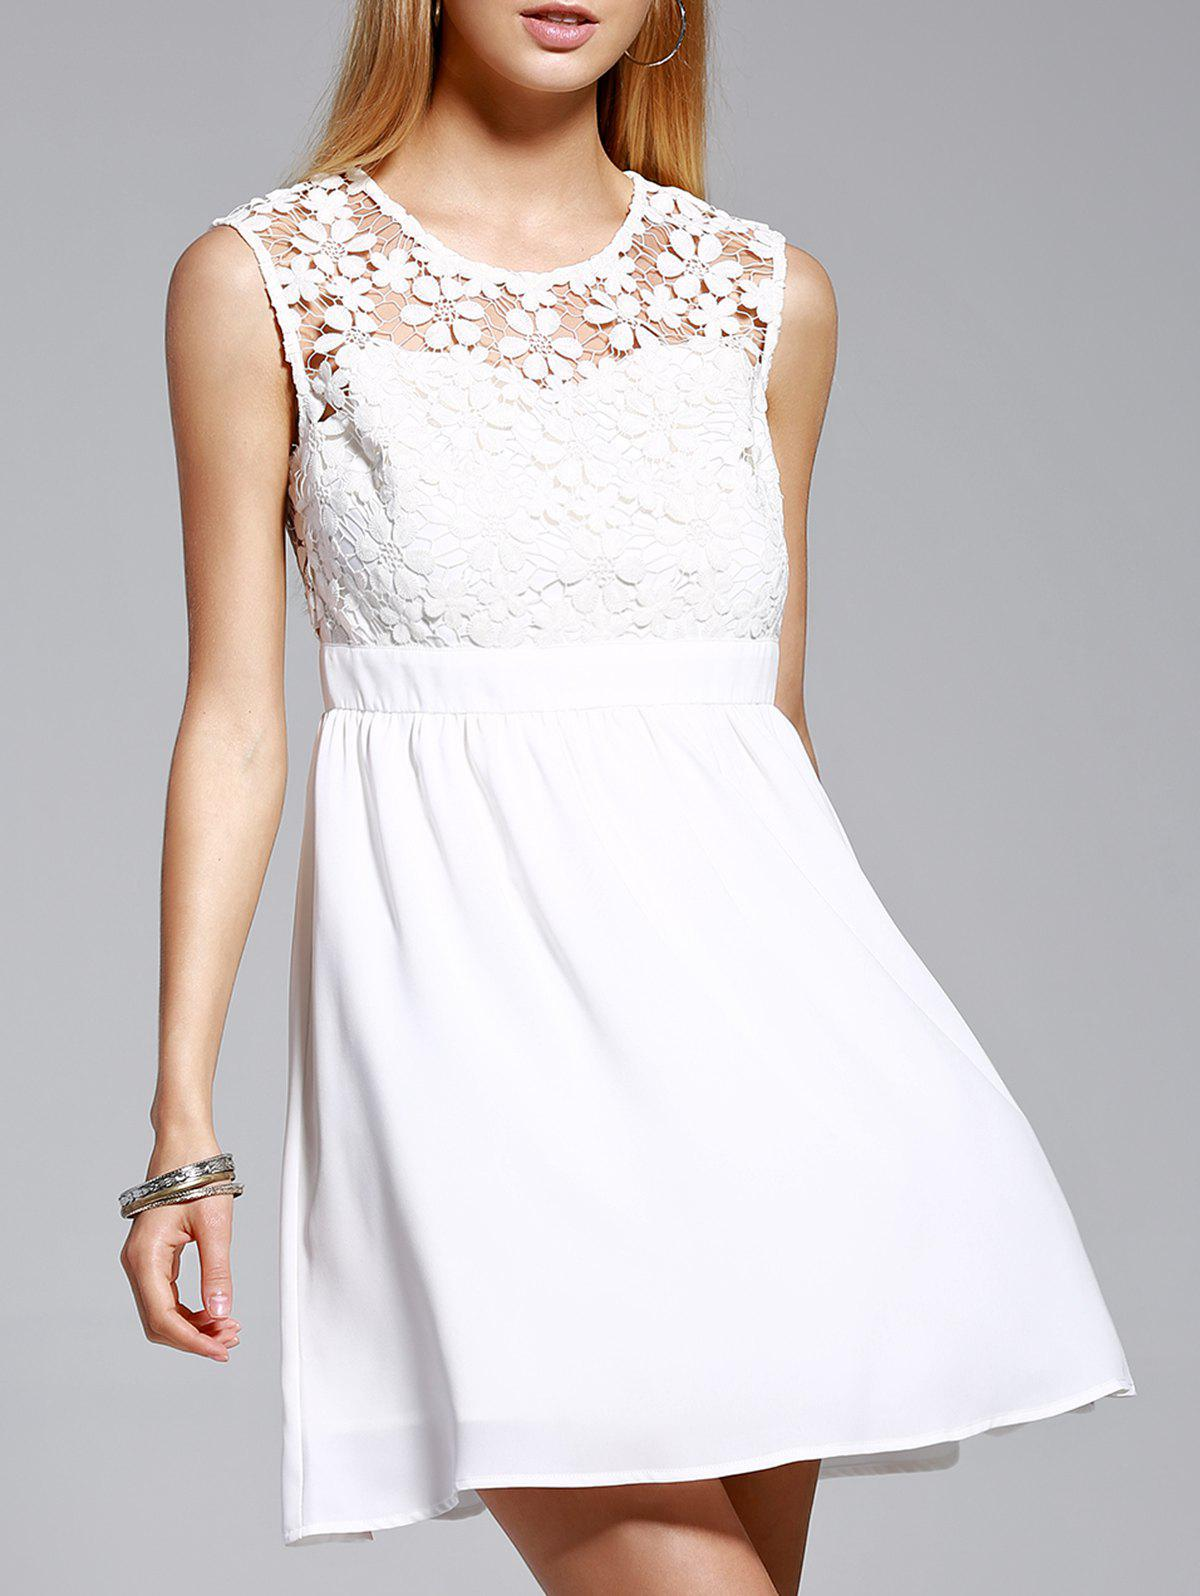 Trendy Jewel Neck Sleeveless Lace Spliced Dress For Women - L WHITE